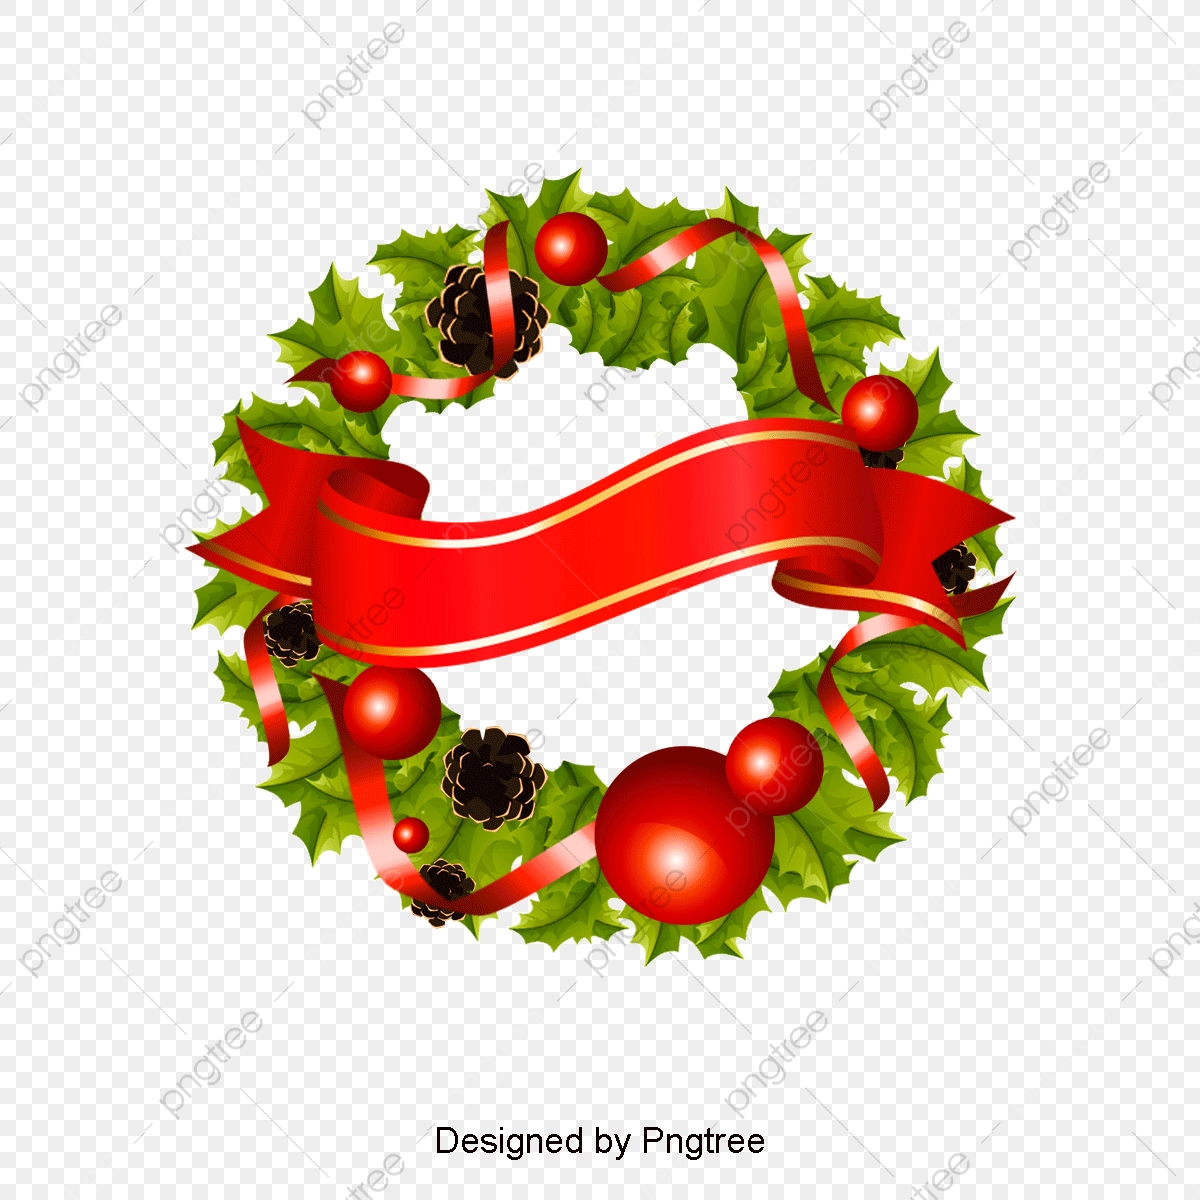 Christmas Reef Png.Christmas Wreath Wreath Ring Png Transparent Clipart Image